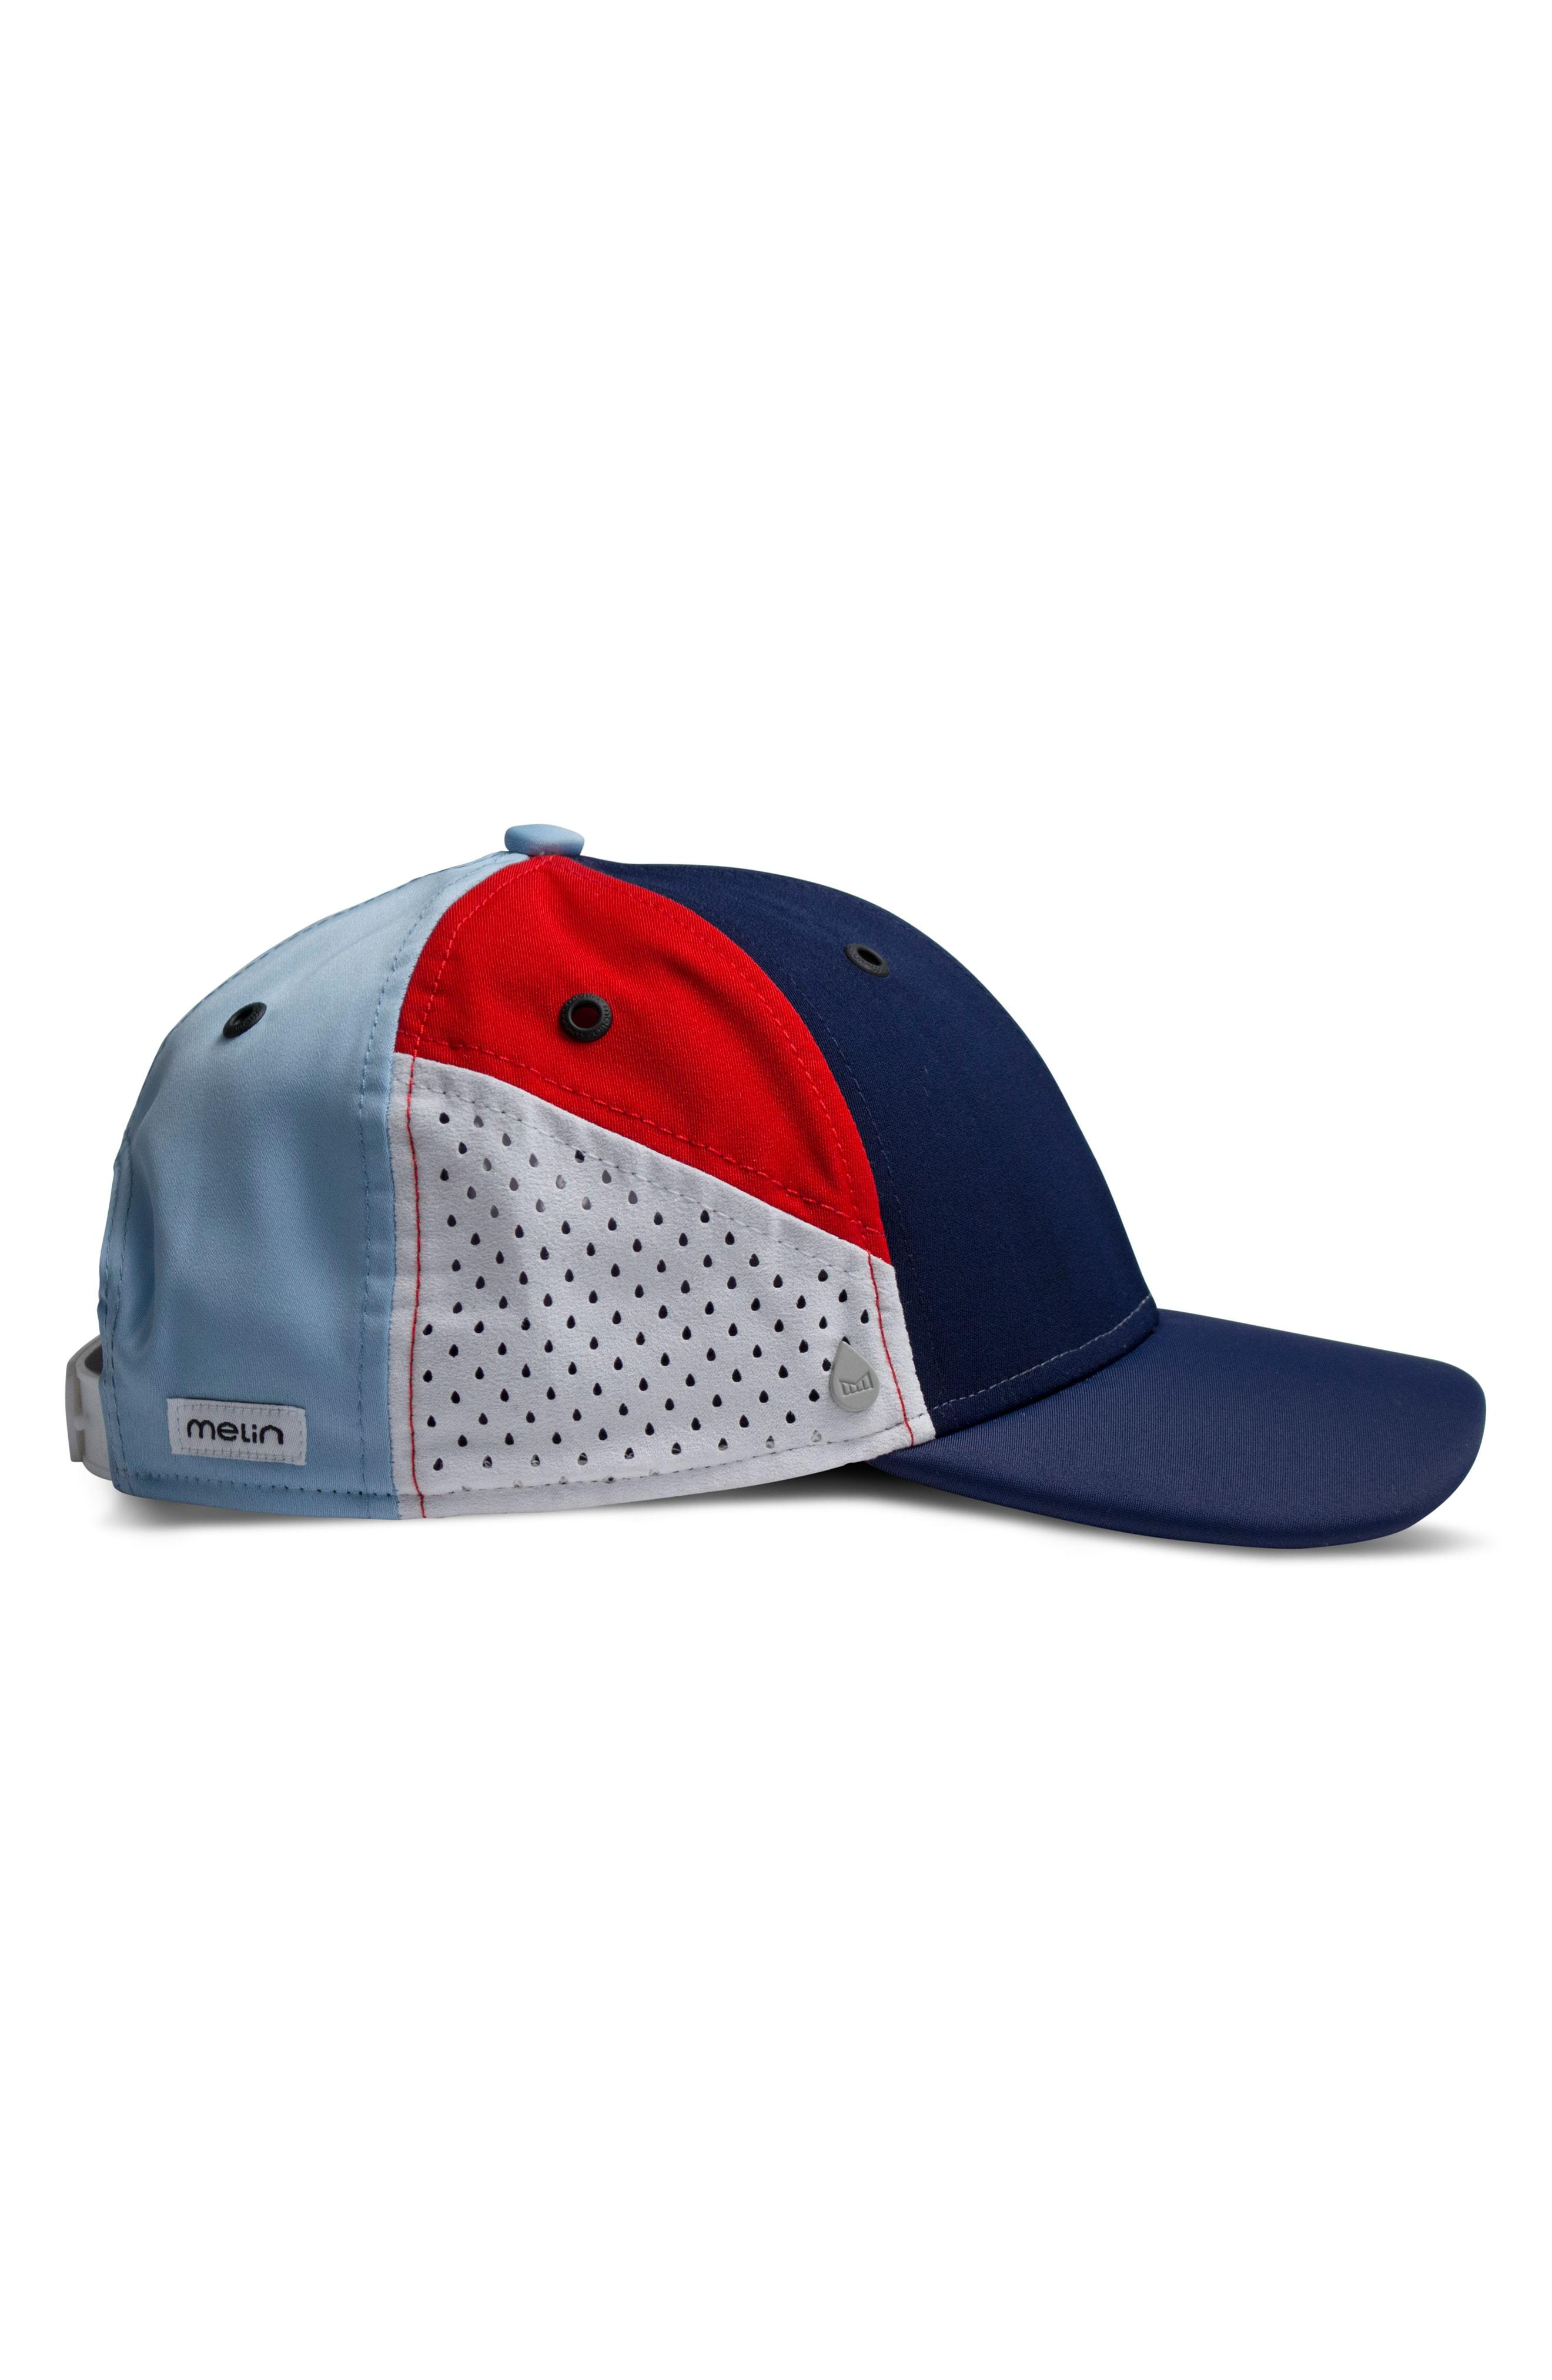 best service 4af4c 41dbf Melin The Assault Snapback Baseball Cap - Red In Red  White